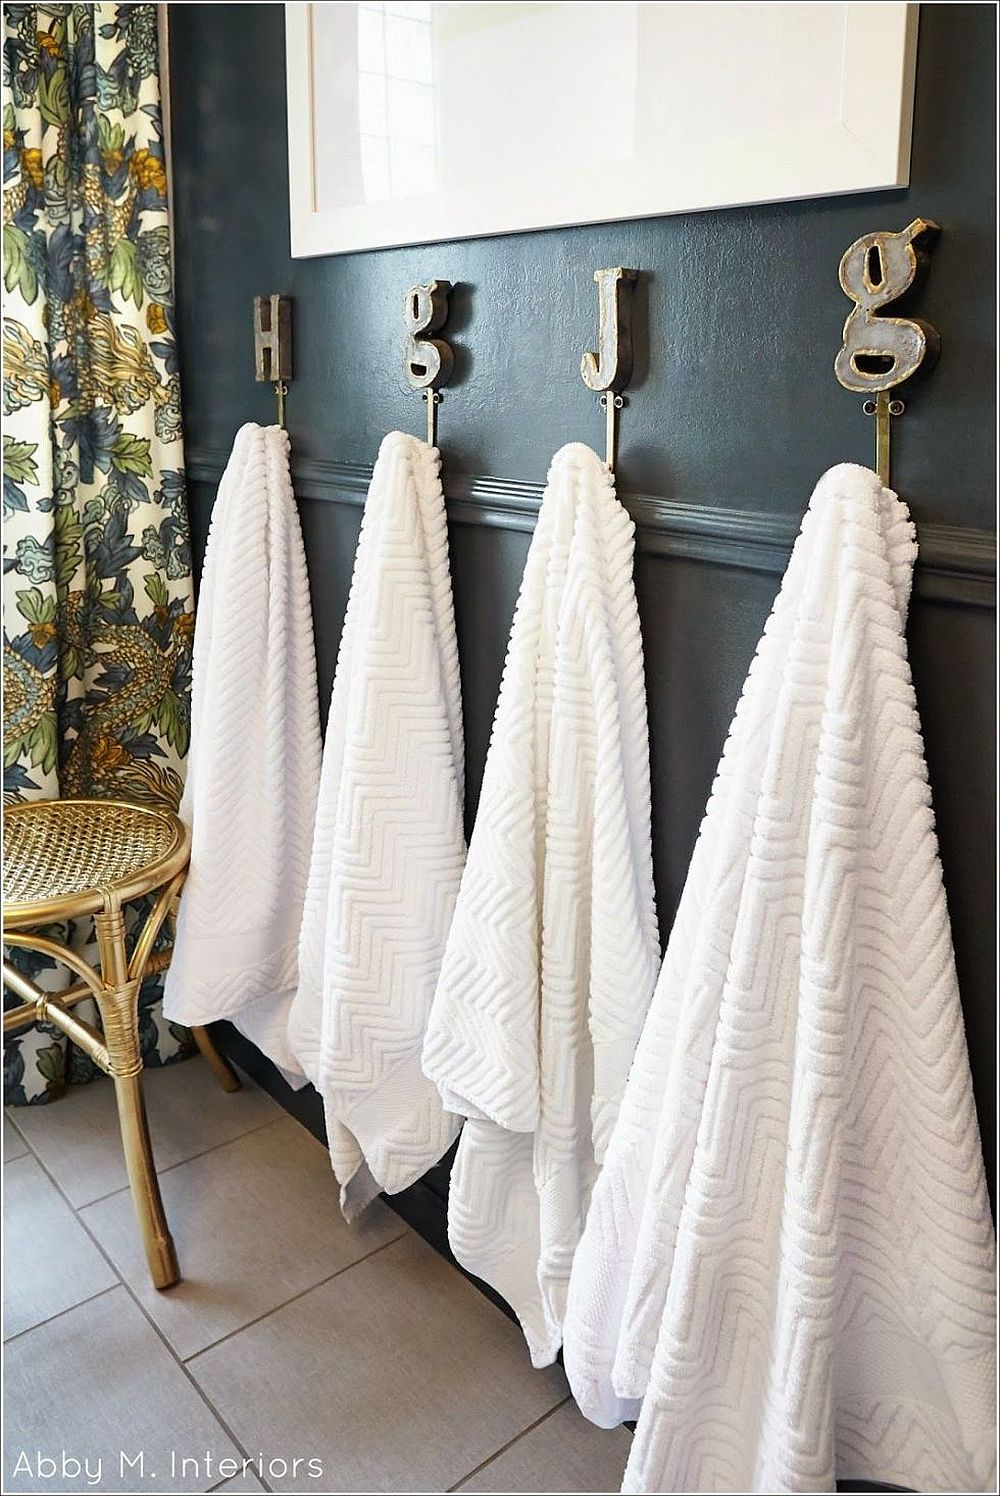 9 Towel Display Ideas for Contemporary Bathrooms